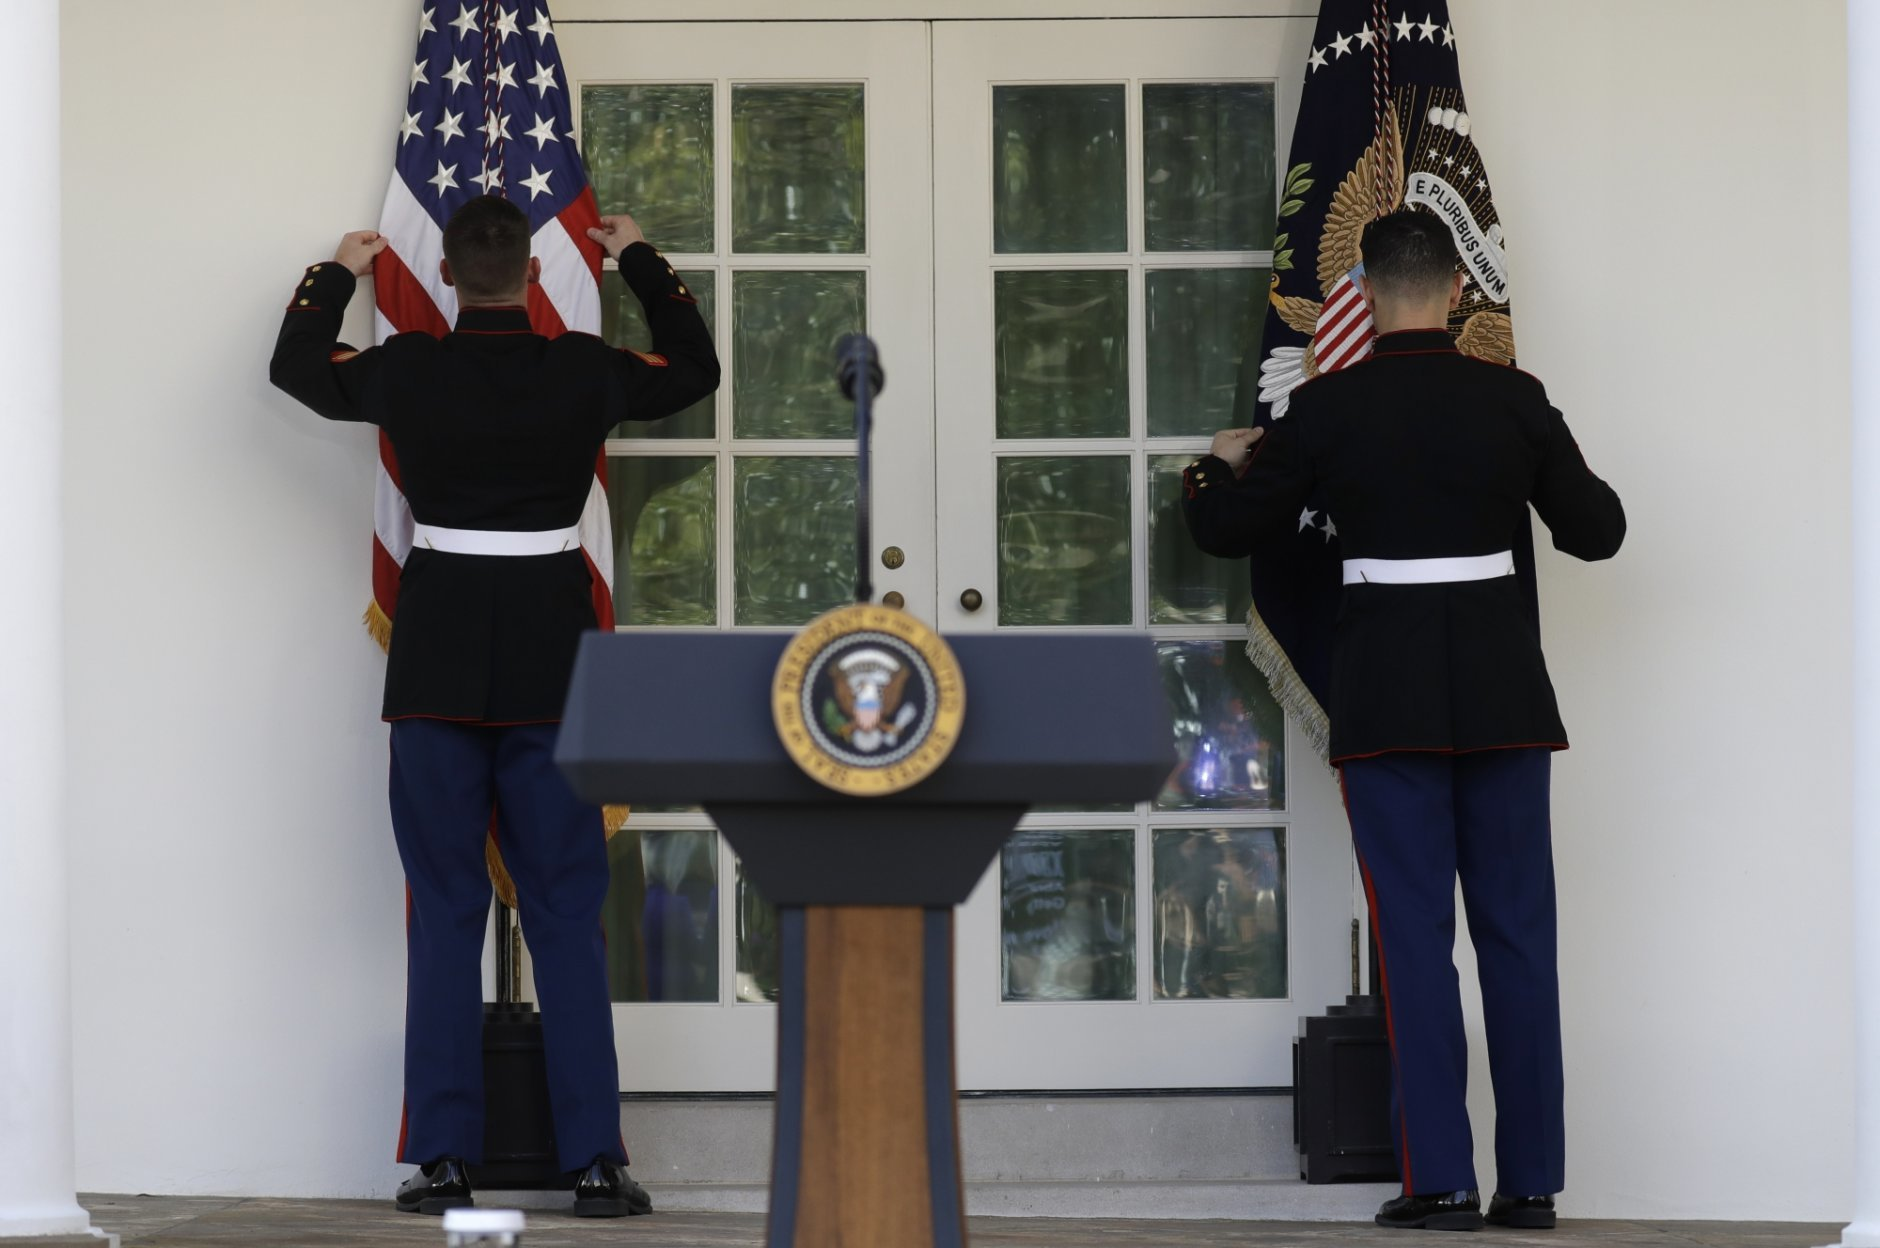 Military aides adjust flags before President Donald Trump speaks in the Rose Garden of the White House, Friday, Jan 25, 2019, in Washington. (AP Photo/ Evan Vucci)